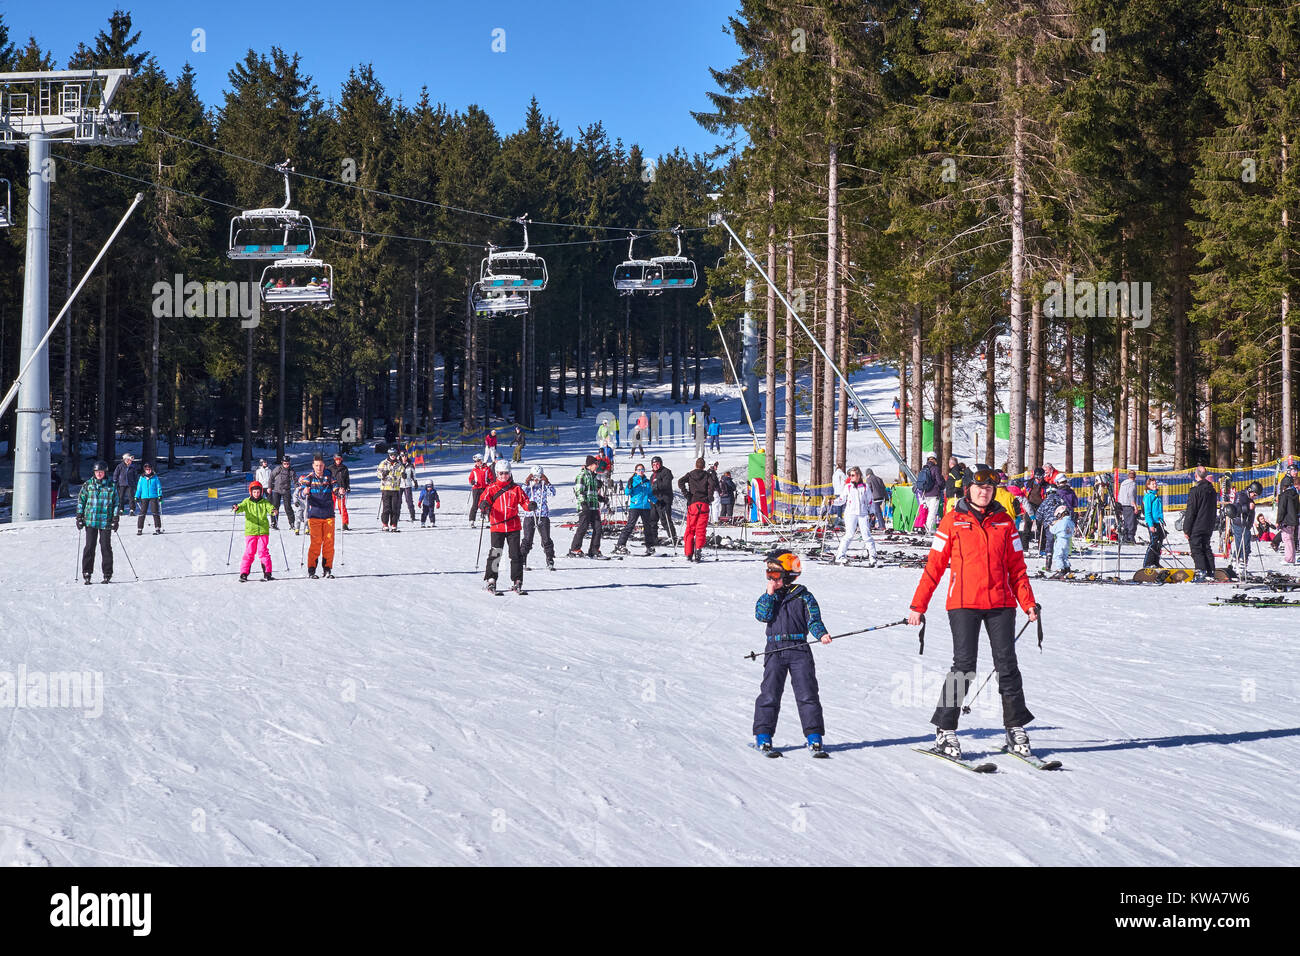 WINTERBERG, GERMANY - FEBRUARY 15, 2017: Woman and child on skies on a slope at Ski Carousel Winterberg - Stock Image